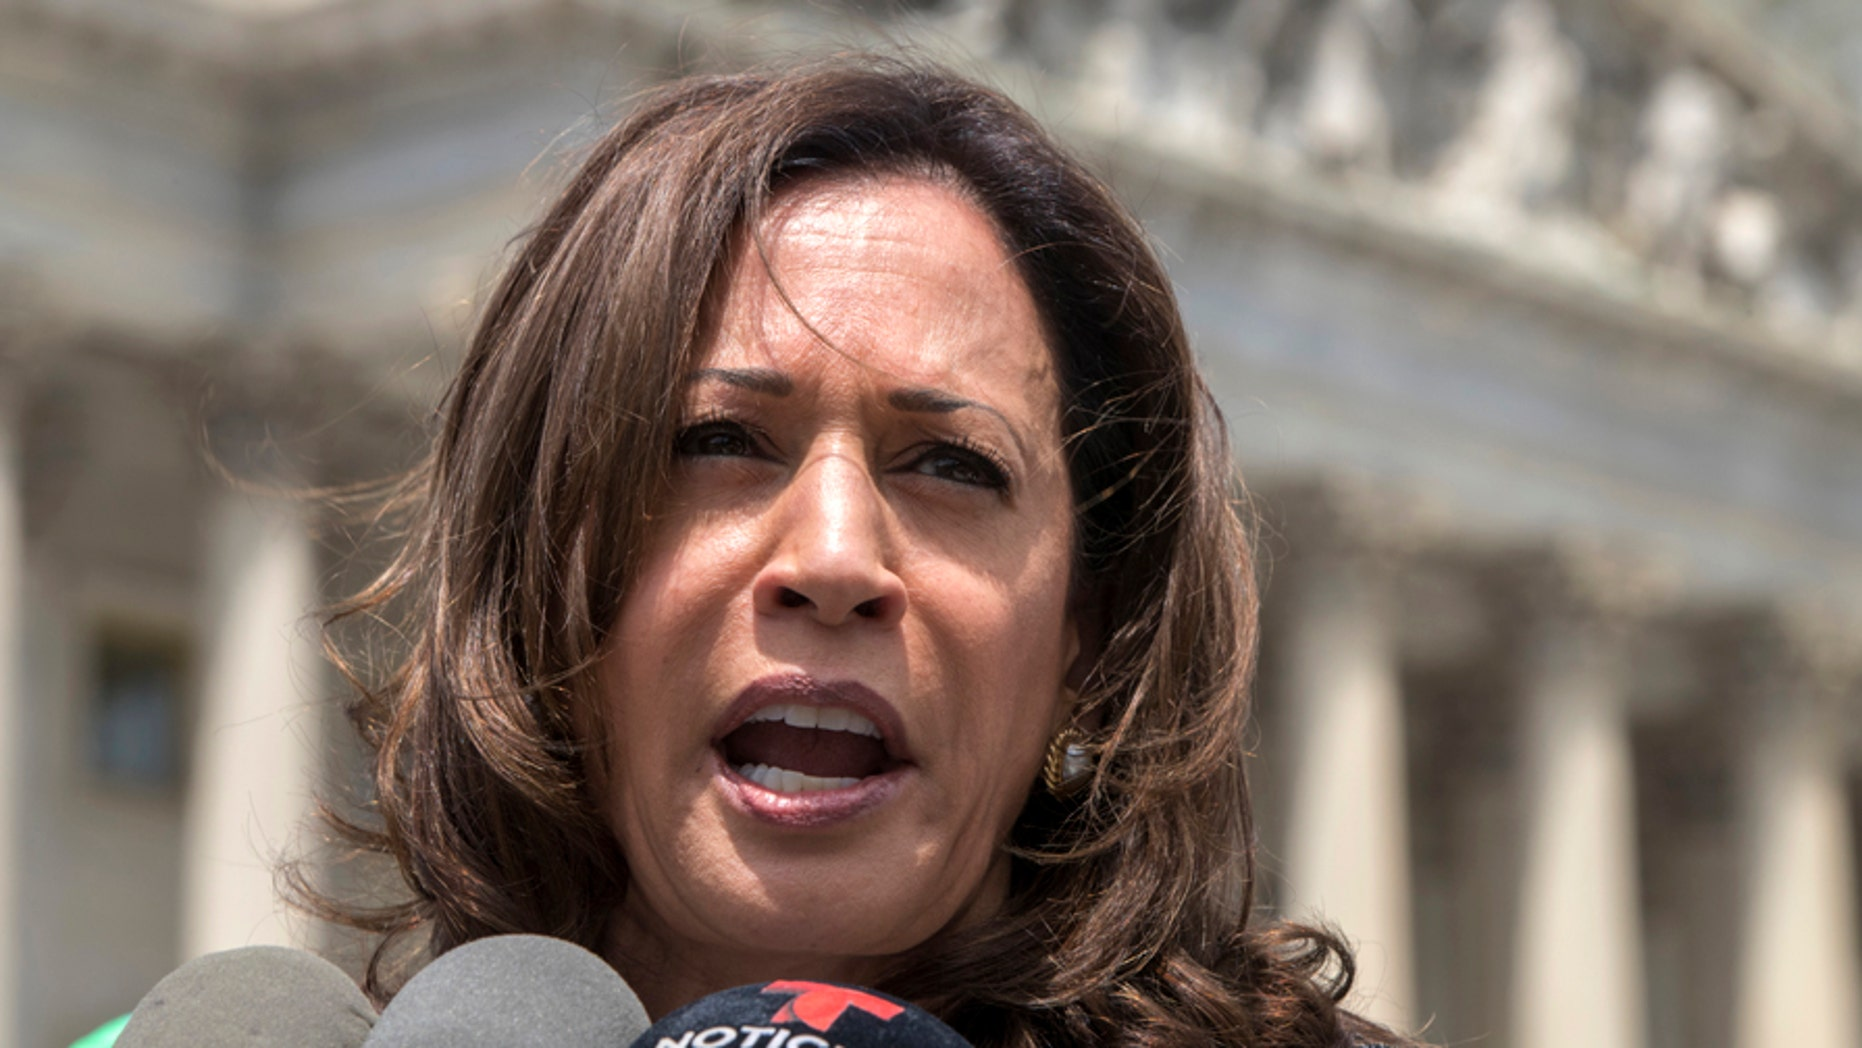 Sen. Kamala Harris' office rejected a courtesy call from the White House in the lead up to President Trump's Supreme Court nomination.